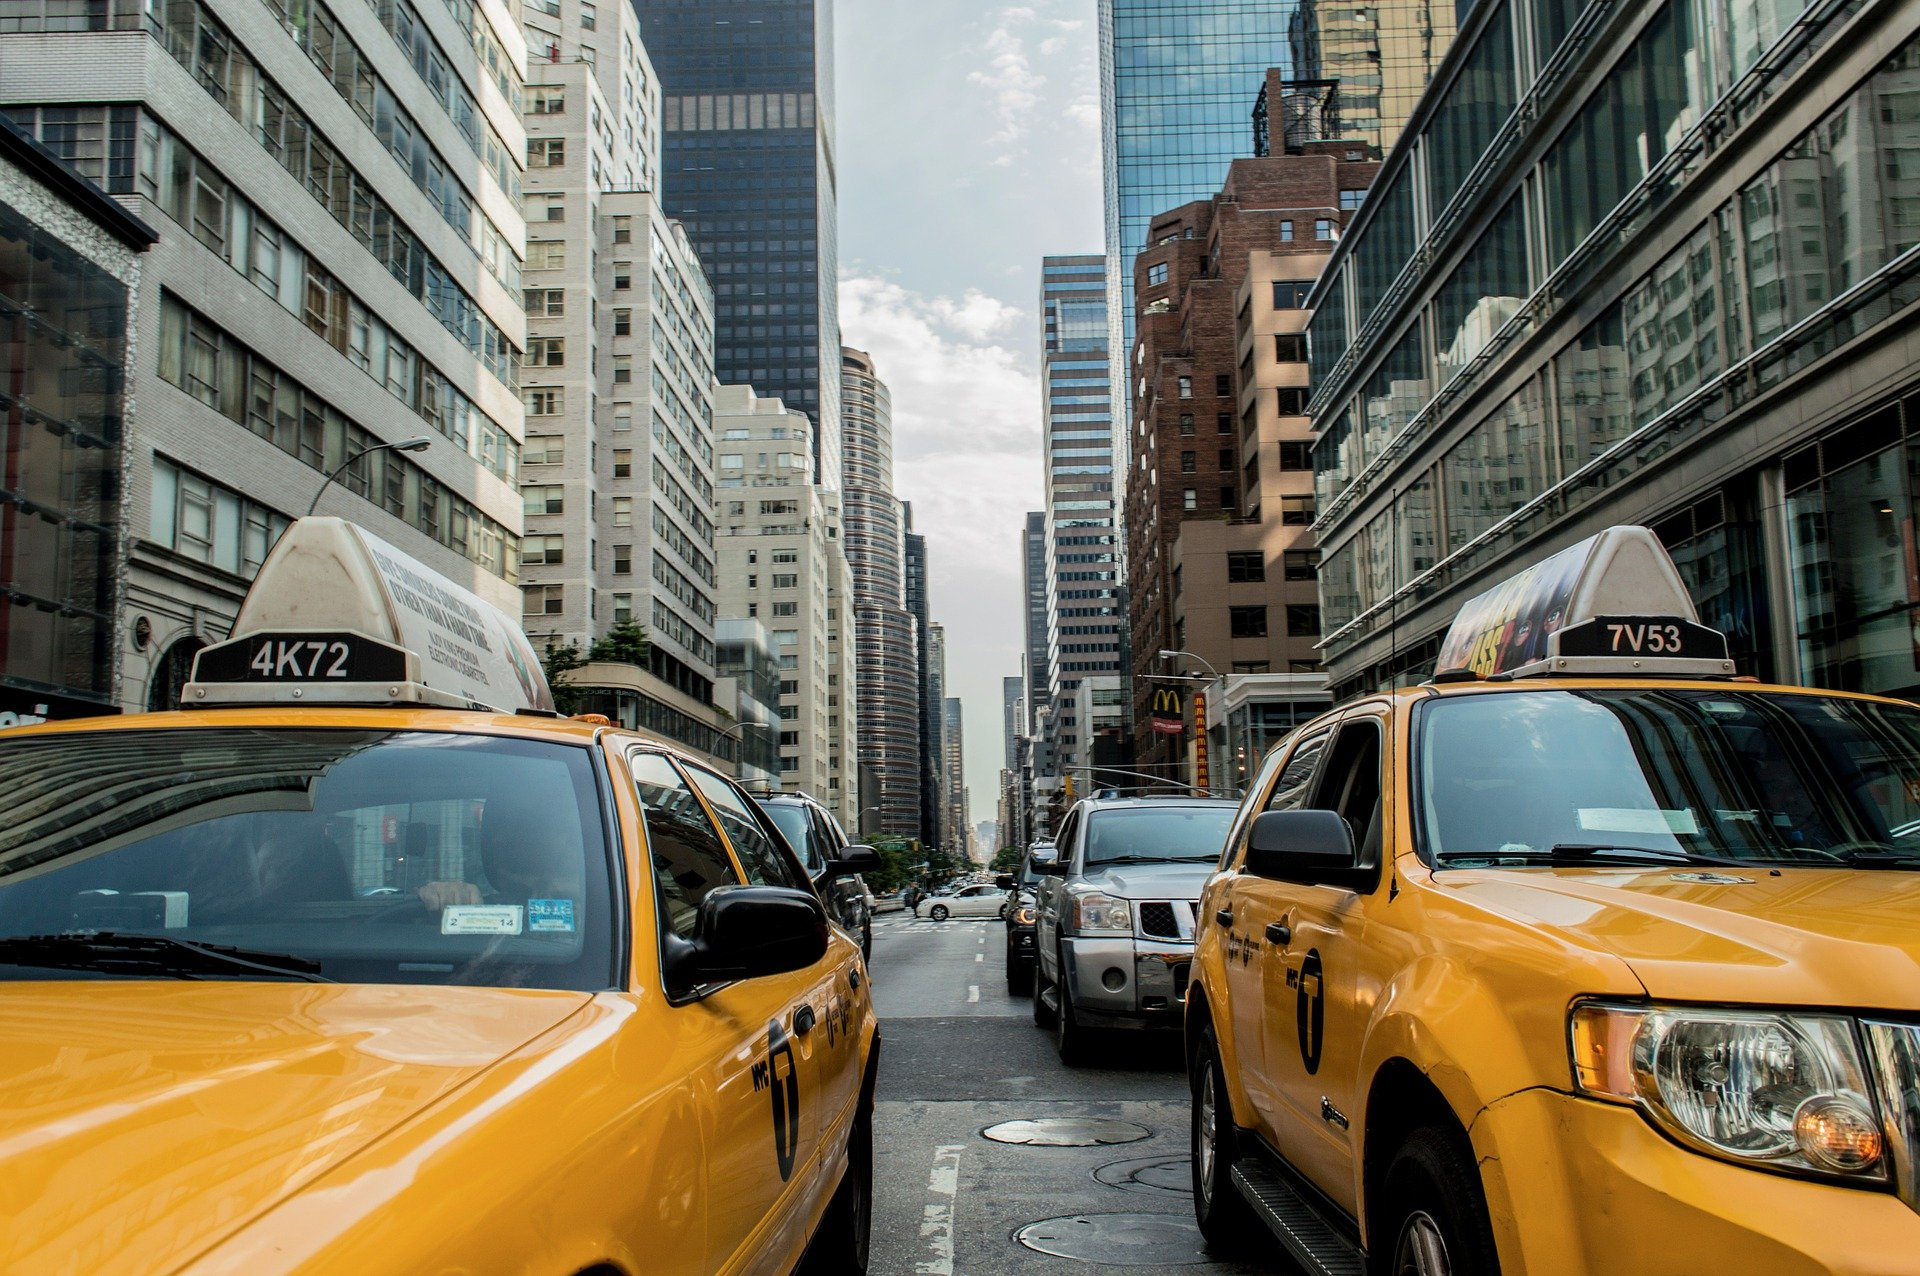 yellow taxis in traffic in a city